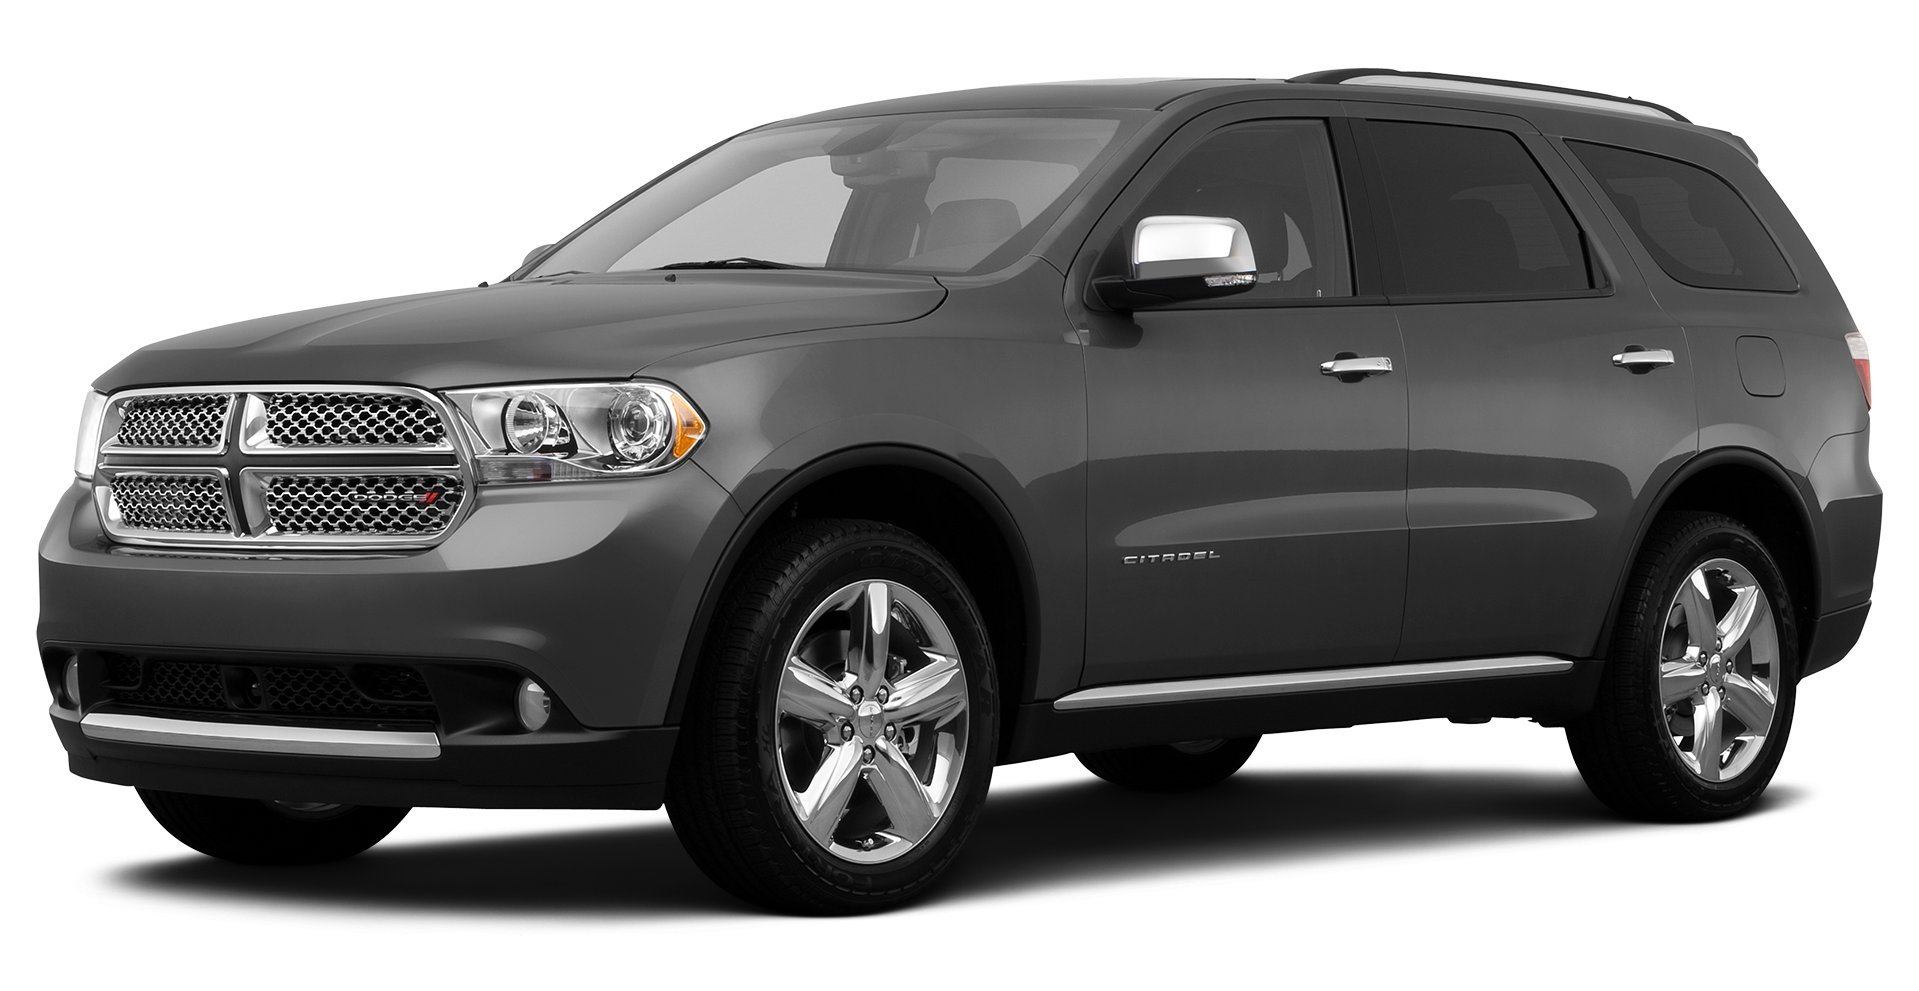 2013 Dodge Durango Reviews Images And Specs Vehicles 2011 Fuel Filter Citadel 2 Wheel Drive 4 Door